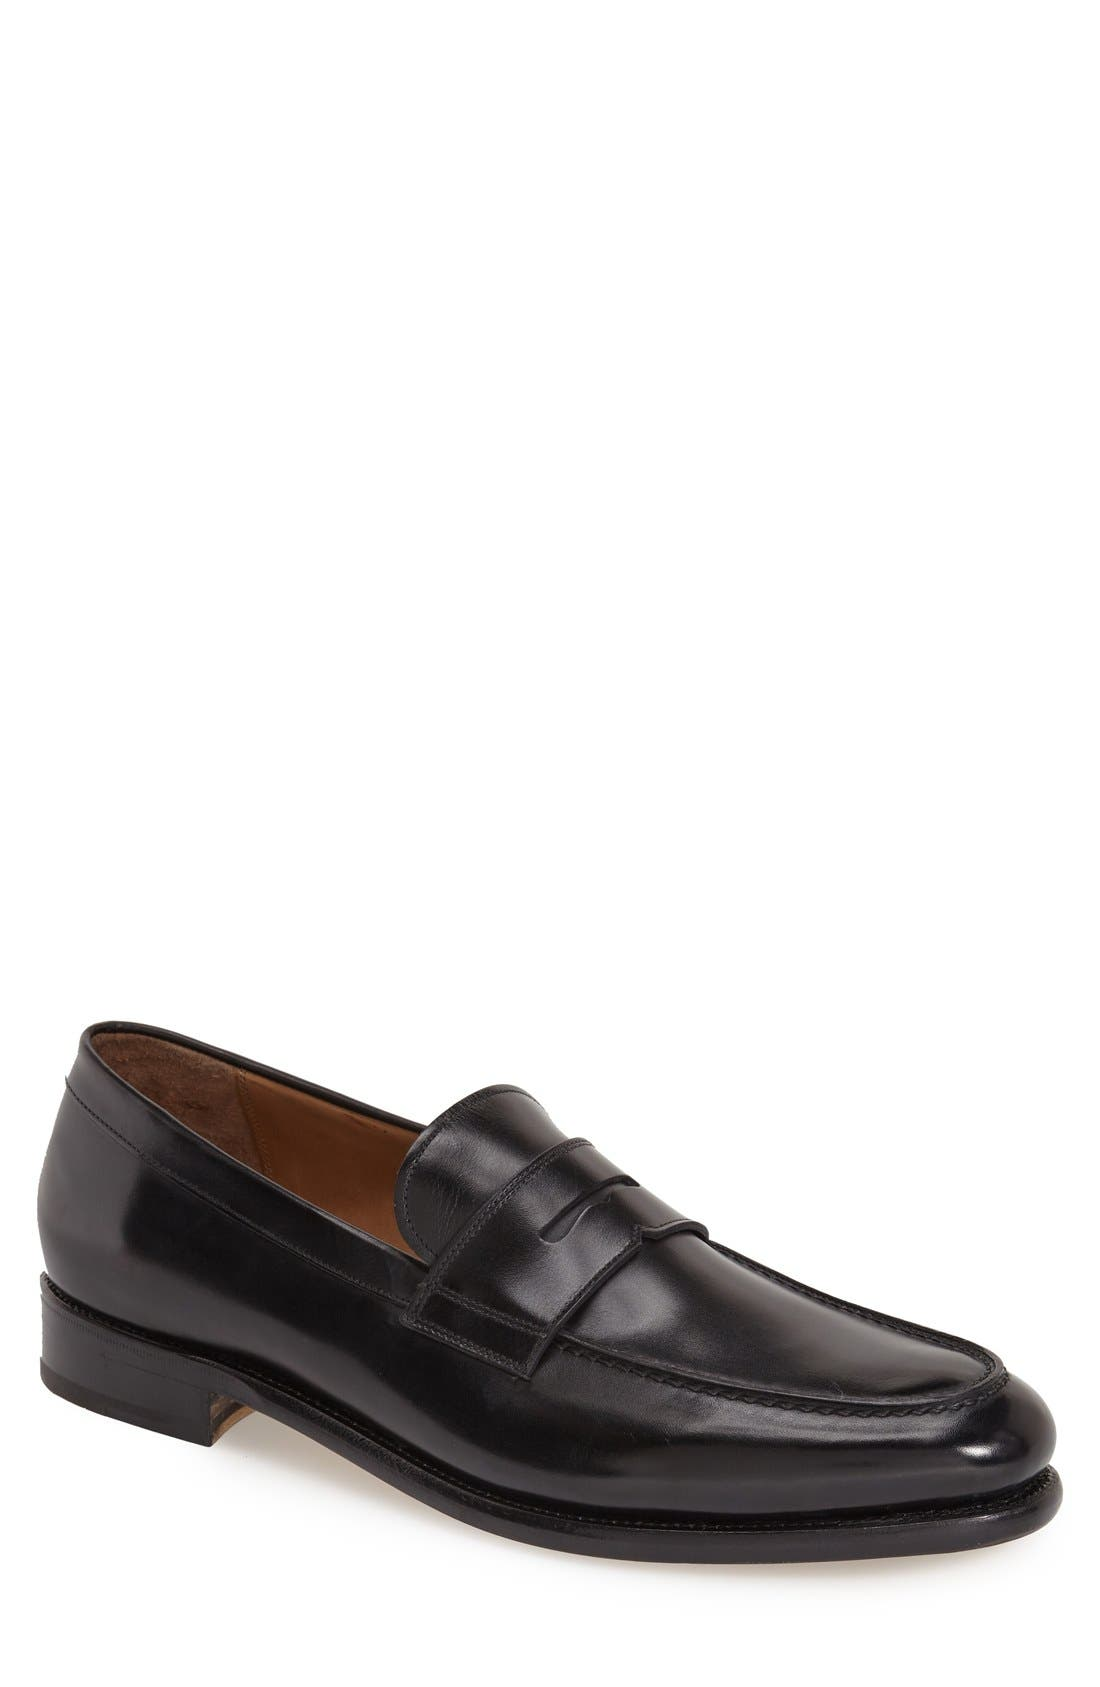 'Rinaldo' Penny Loafer,                             Main thumbnail 1, color,                             Nero Leather